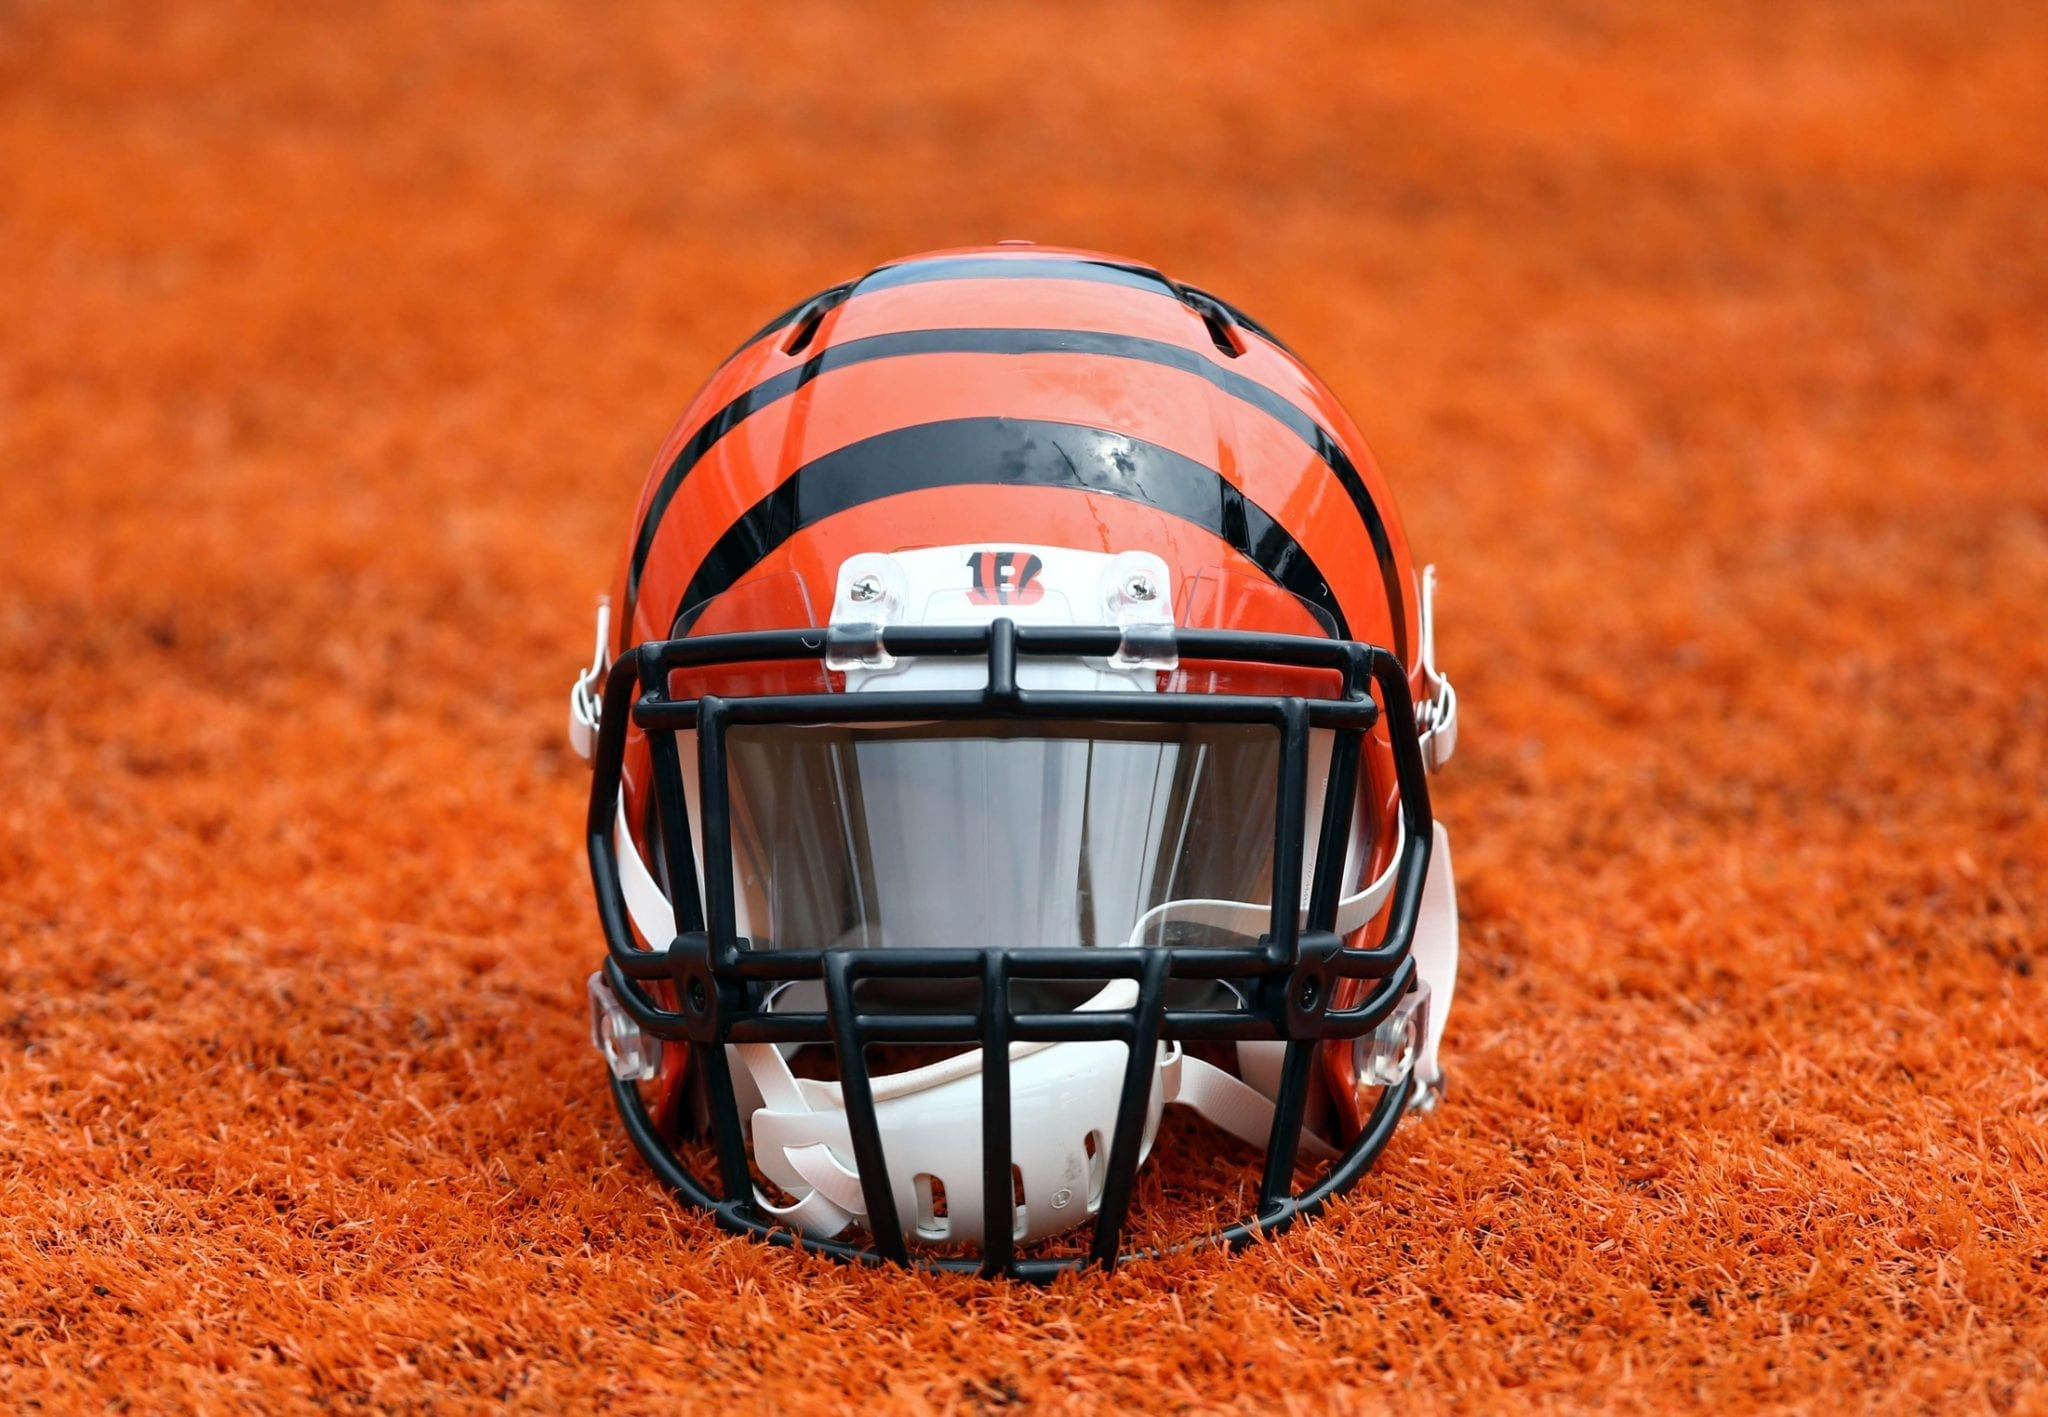 AFC North Notes: Bengals, Browns, Ravens, Steelers